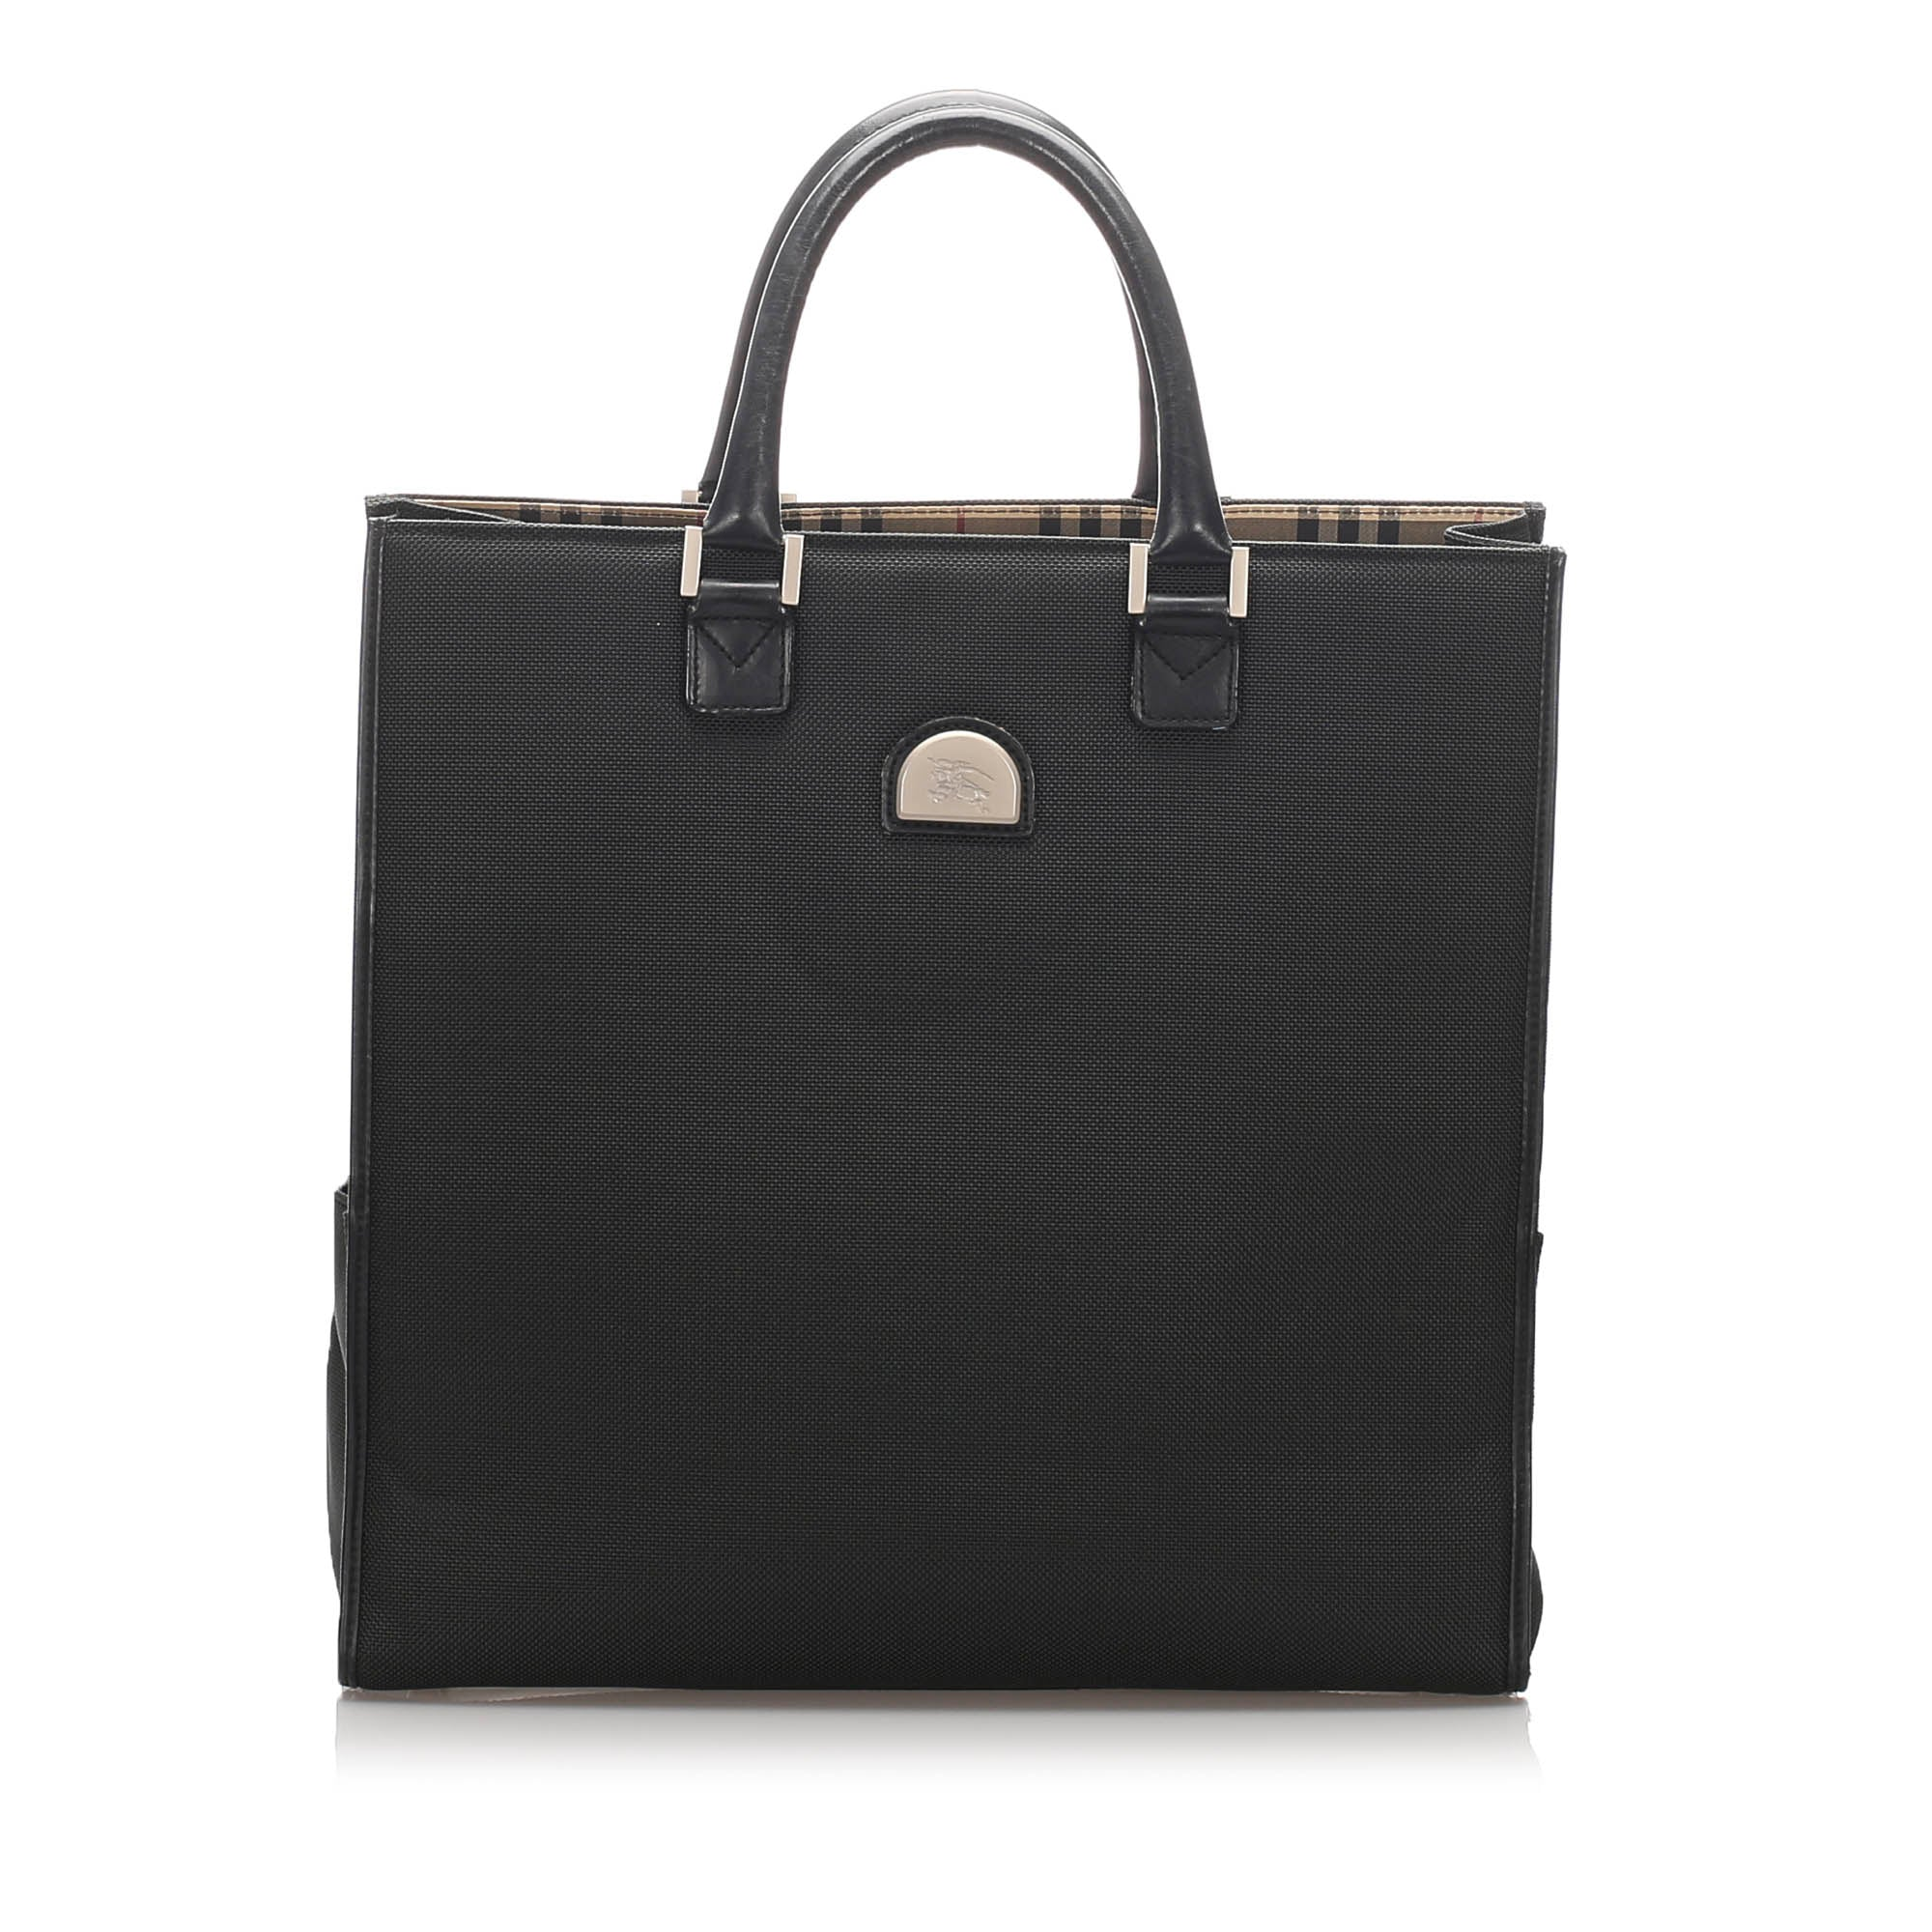 Burberry Black Canvas Tote Bag